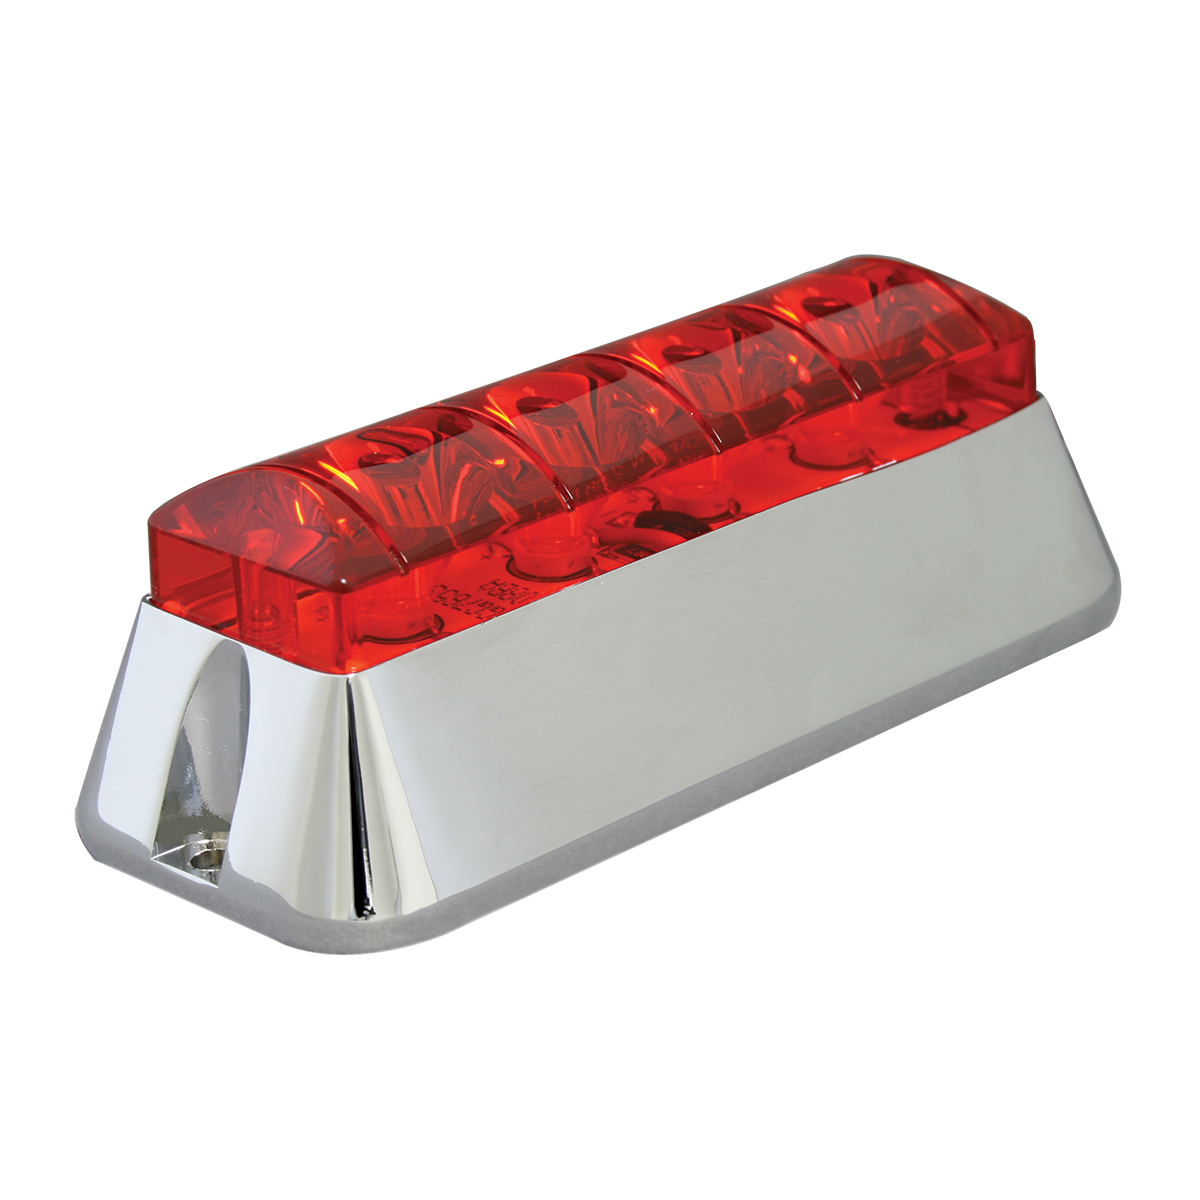 76532 Red/Red Medium Rectangular 4 LED Strobe Light